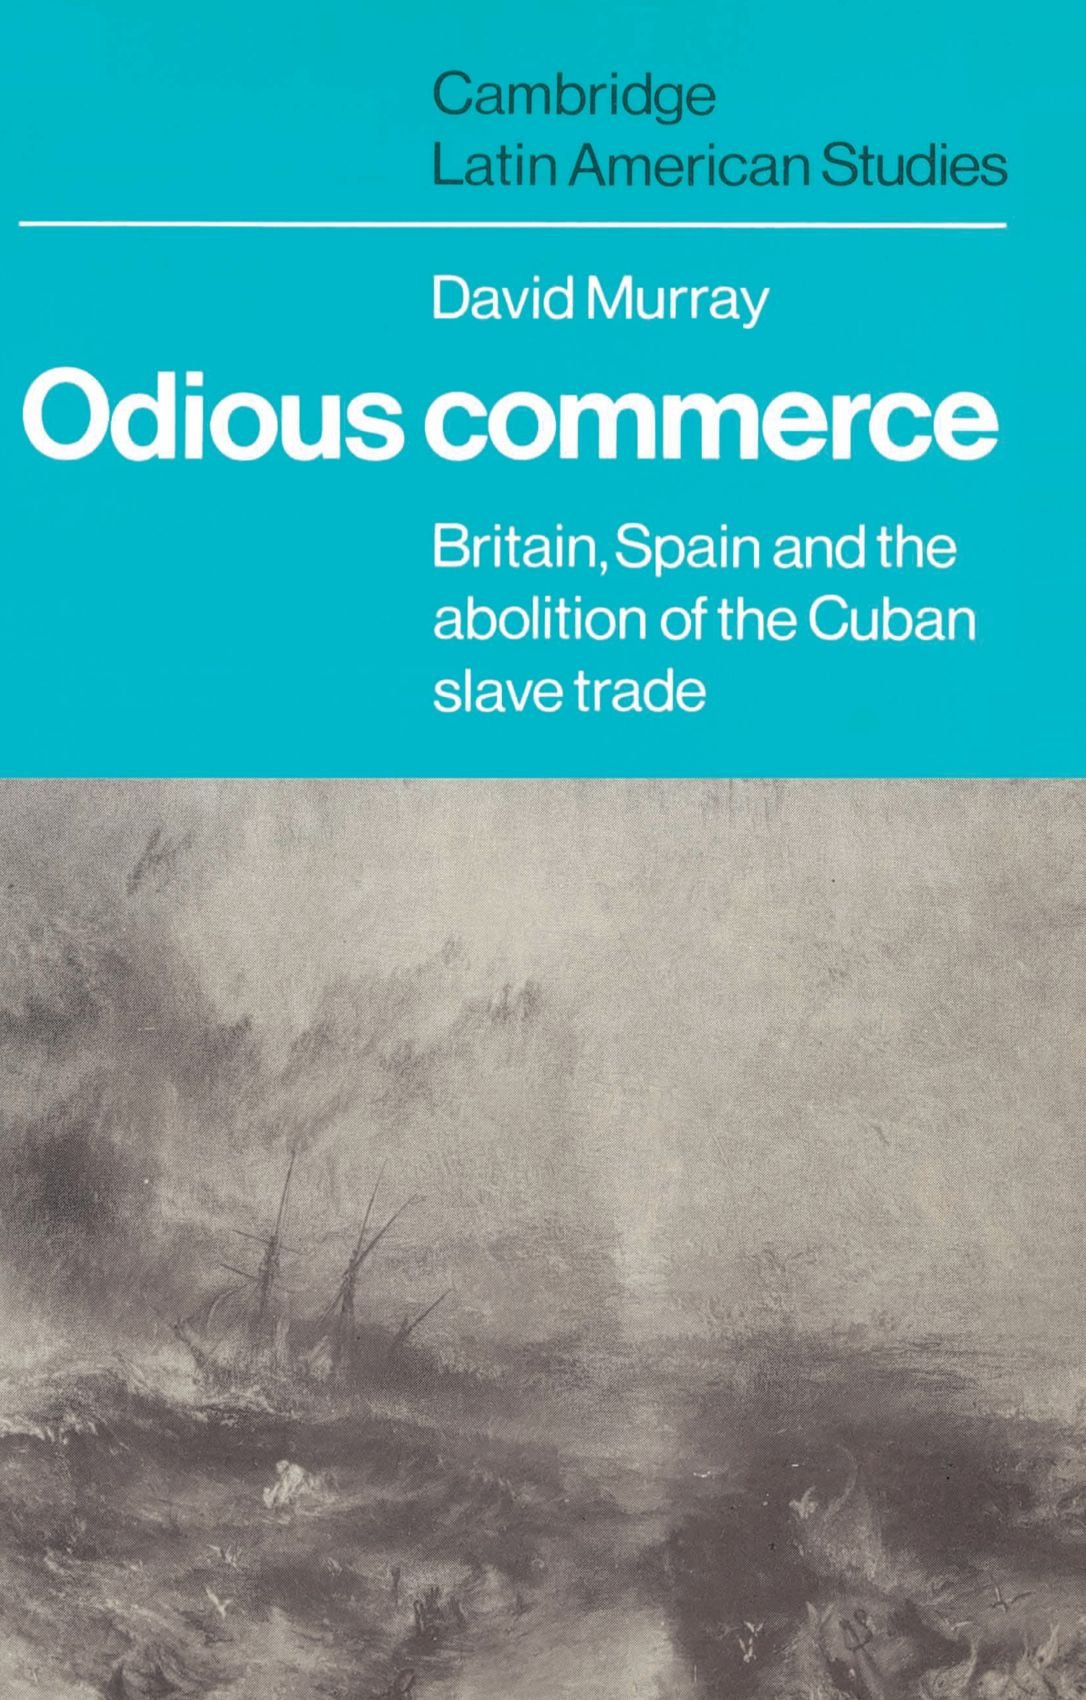 Read Online Odious Commerce: Britain, Spain and the Abolition of the Cuban Slave Trade (Cambridge Latin American Studies) ebook